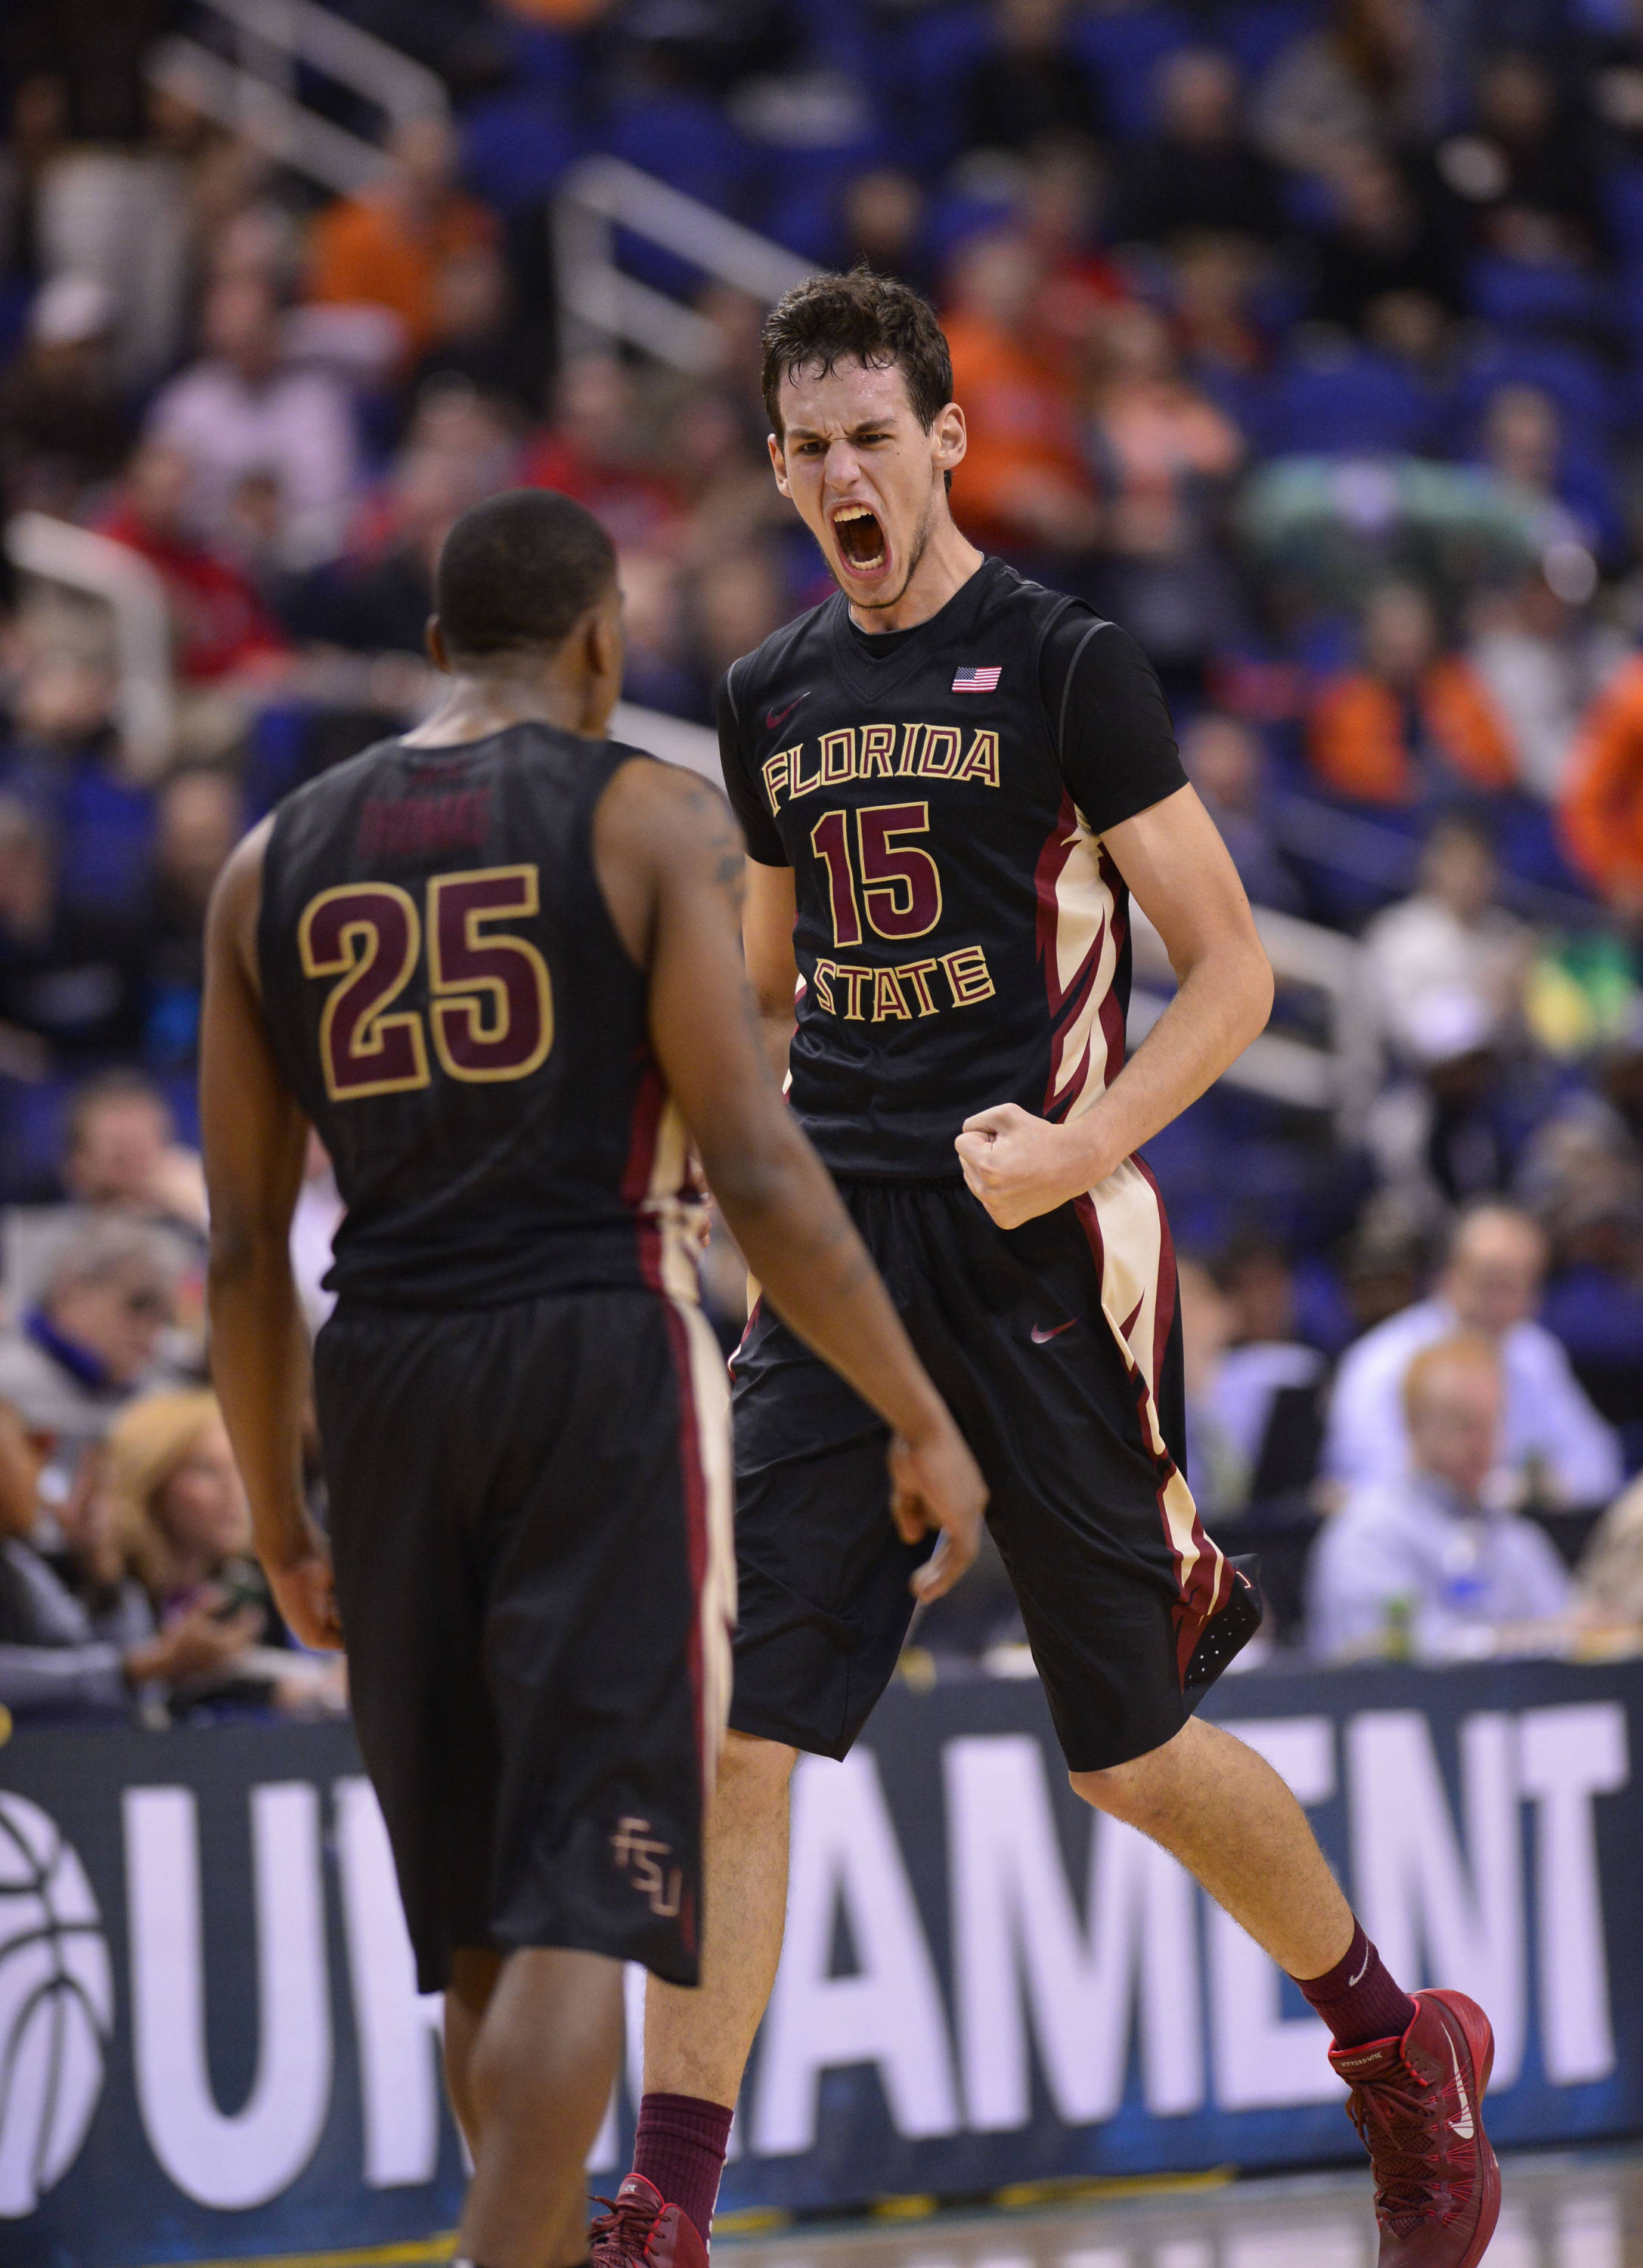 Florida State Seminoles center Boris Bojanovsky (15) reacts with guard Aaron Thomas (25) after hitting the game winning shot. The Seminoles defeated the Terrapins 67-65 in the second round of the ACC college basketball tournament at Greensboro Coliseum. Mandatory Credit: Bob Donnan-USA TODAY Sports